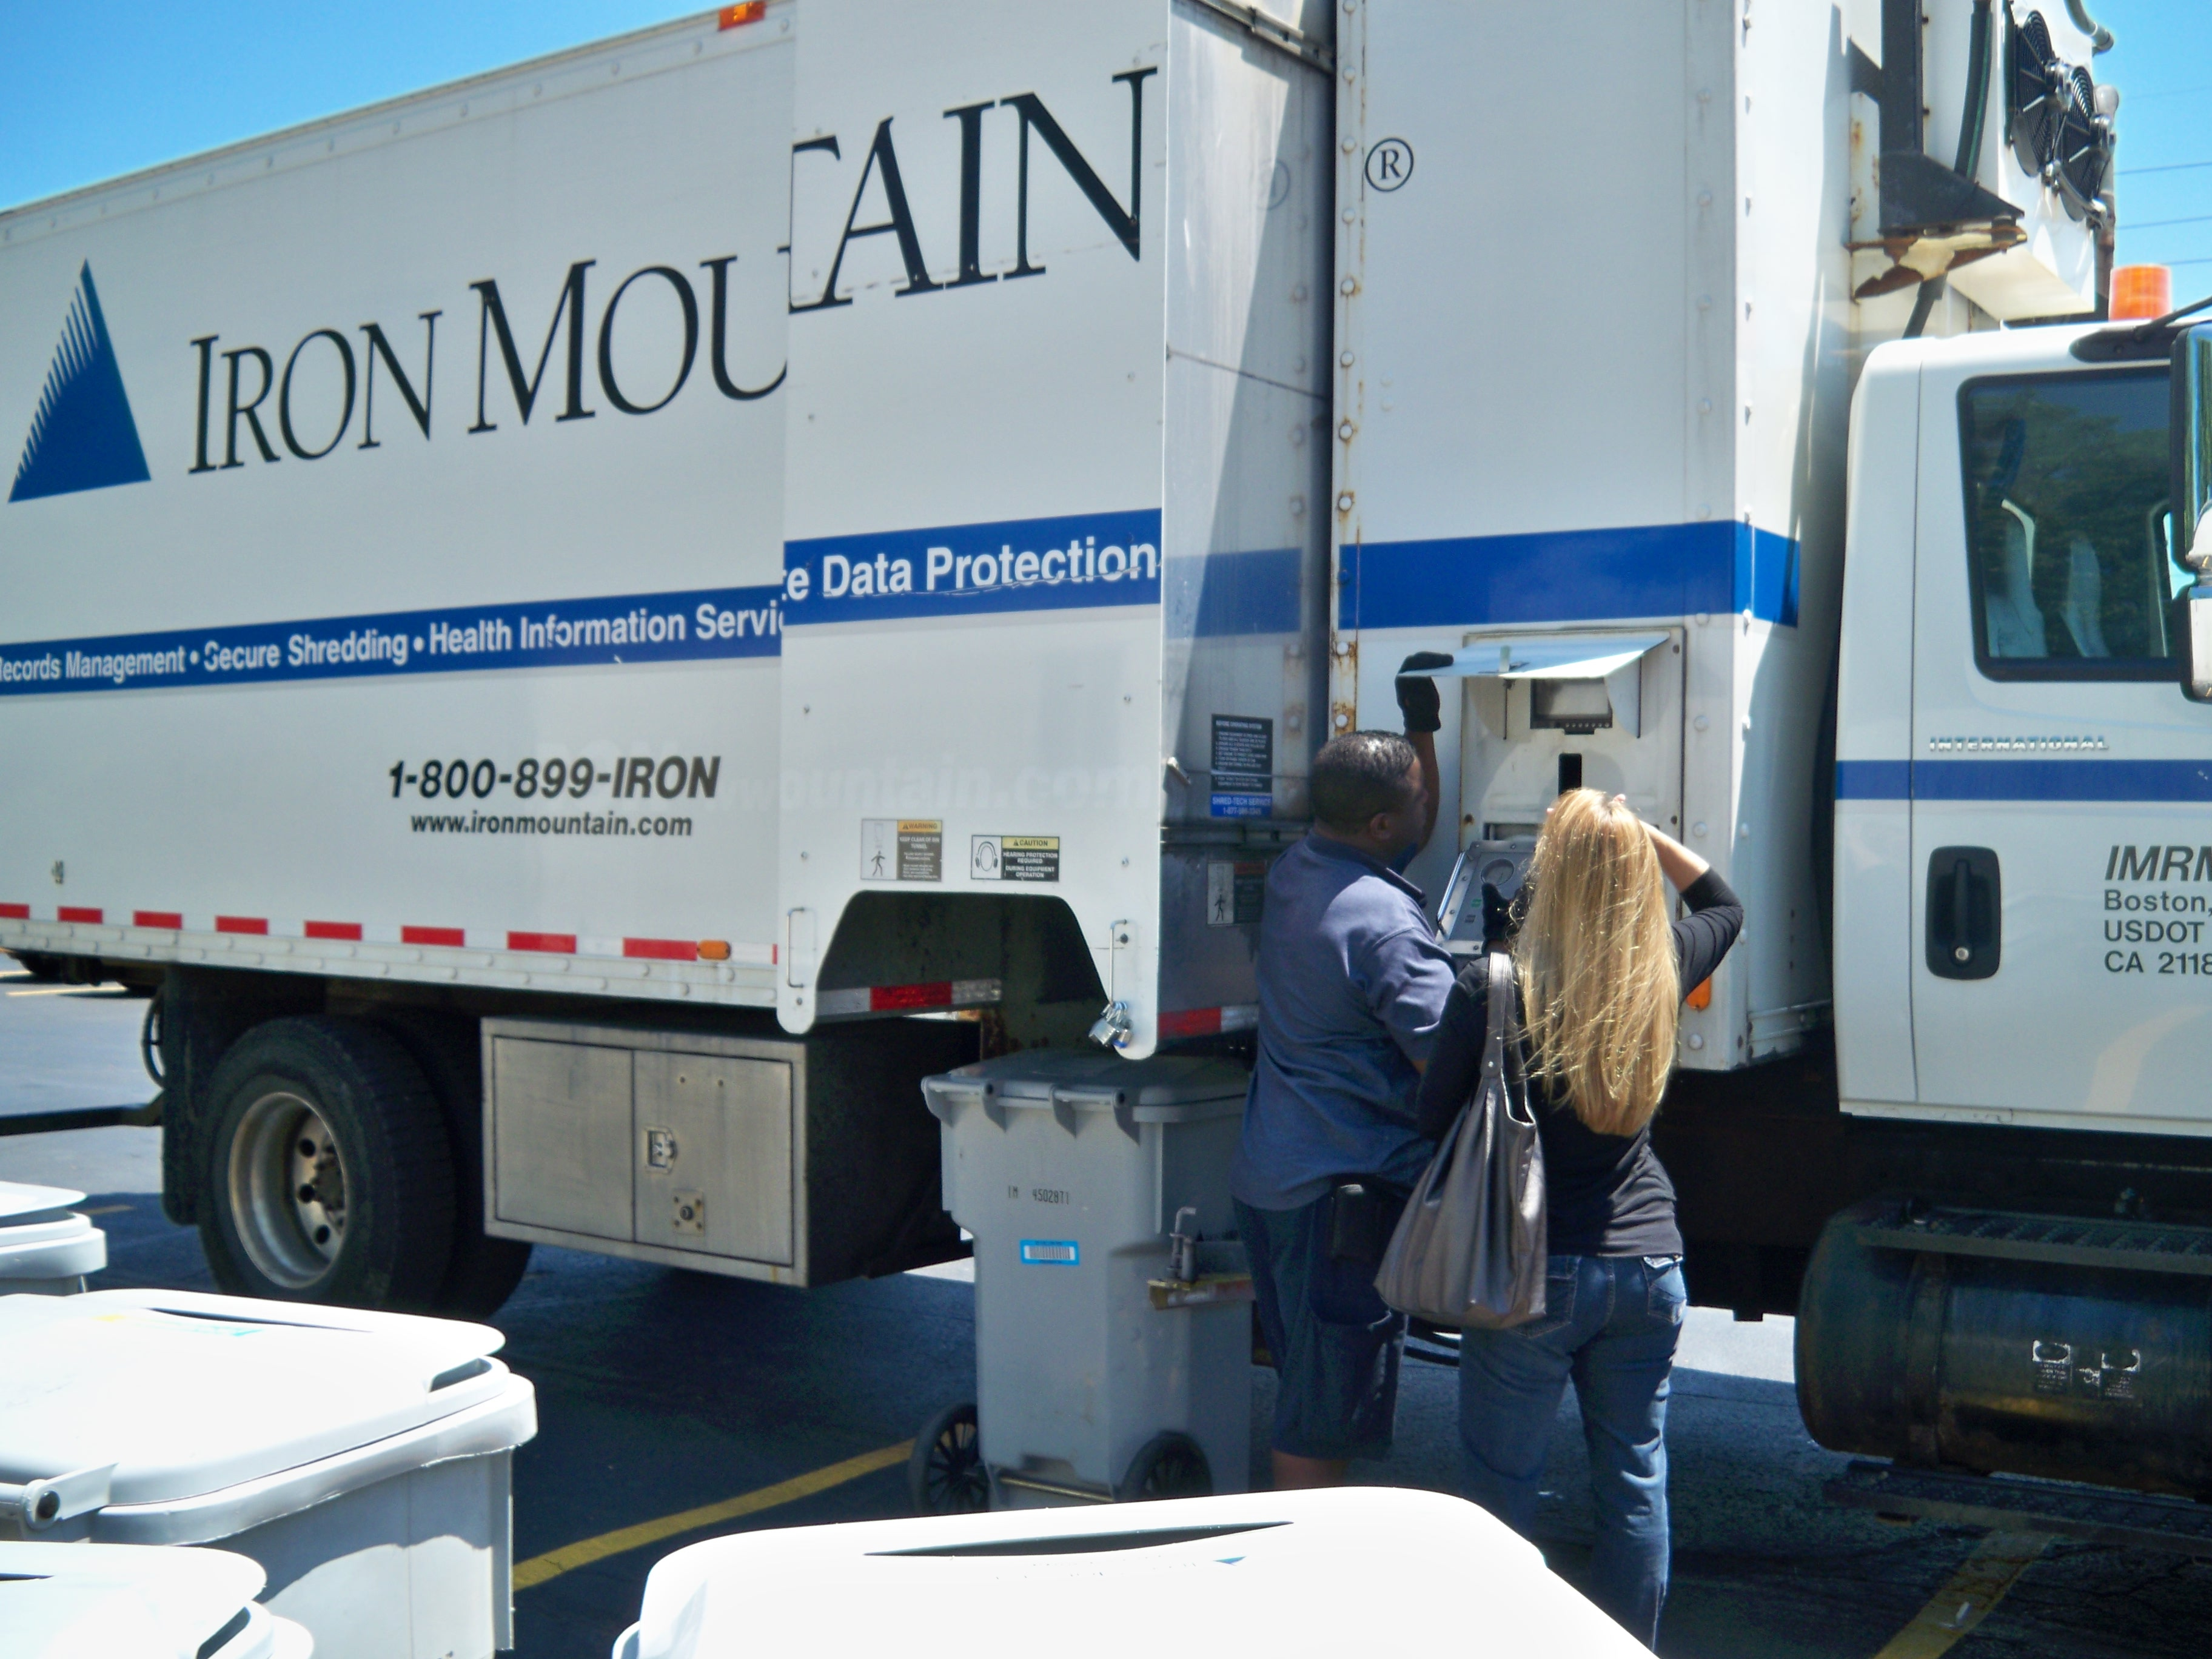 A participant witnessing her documents being shredded via the camera on the mobile shred truck.